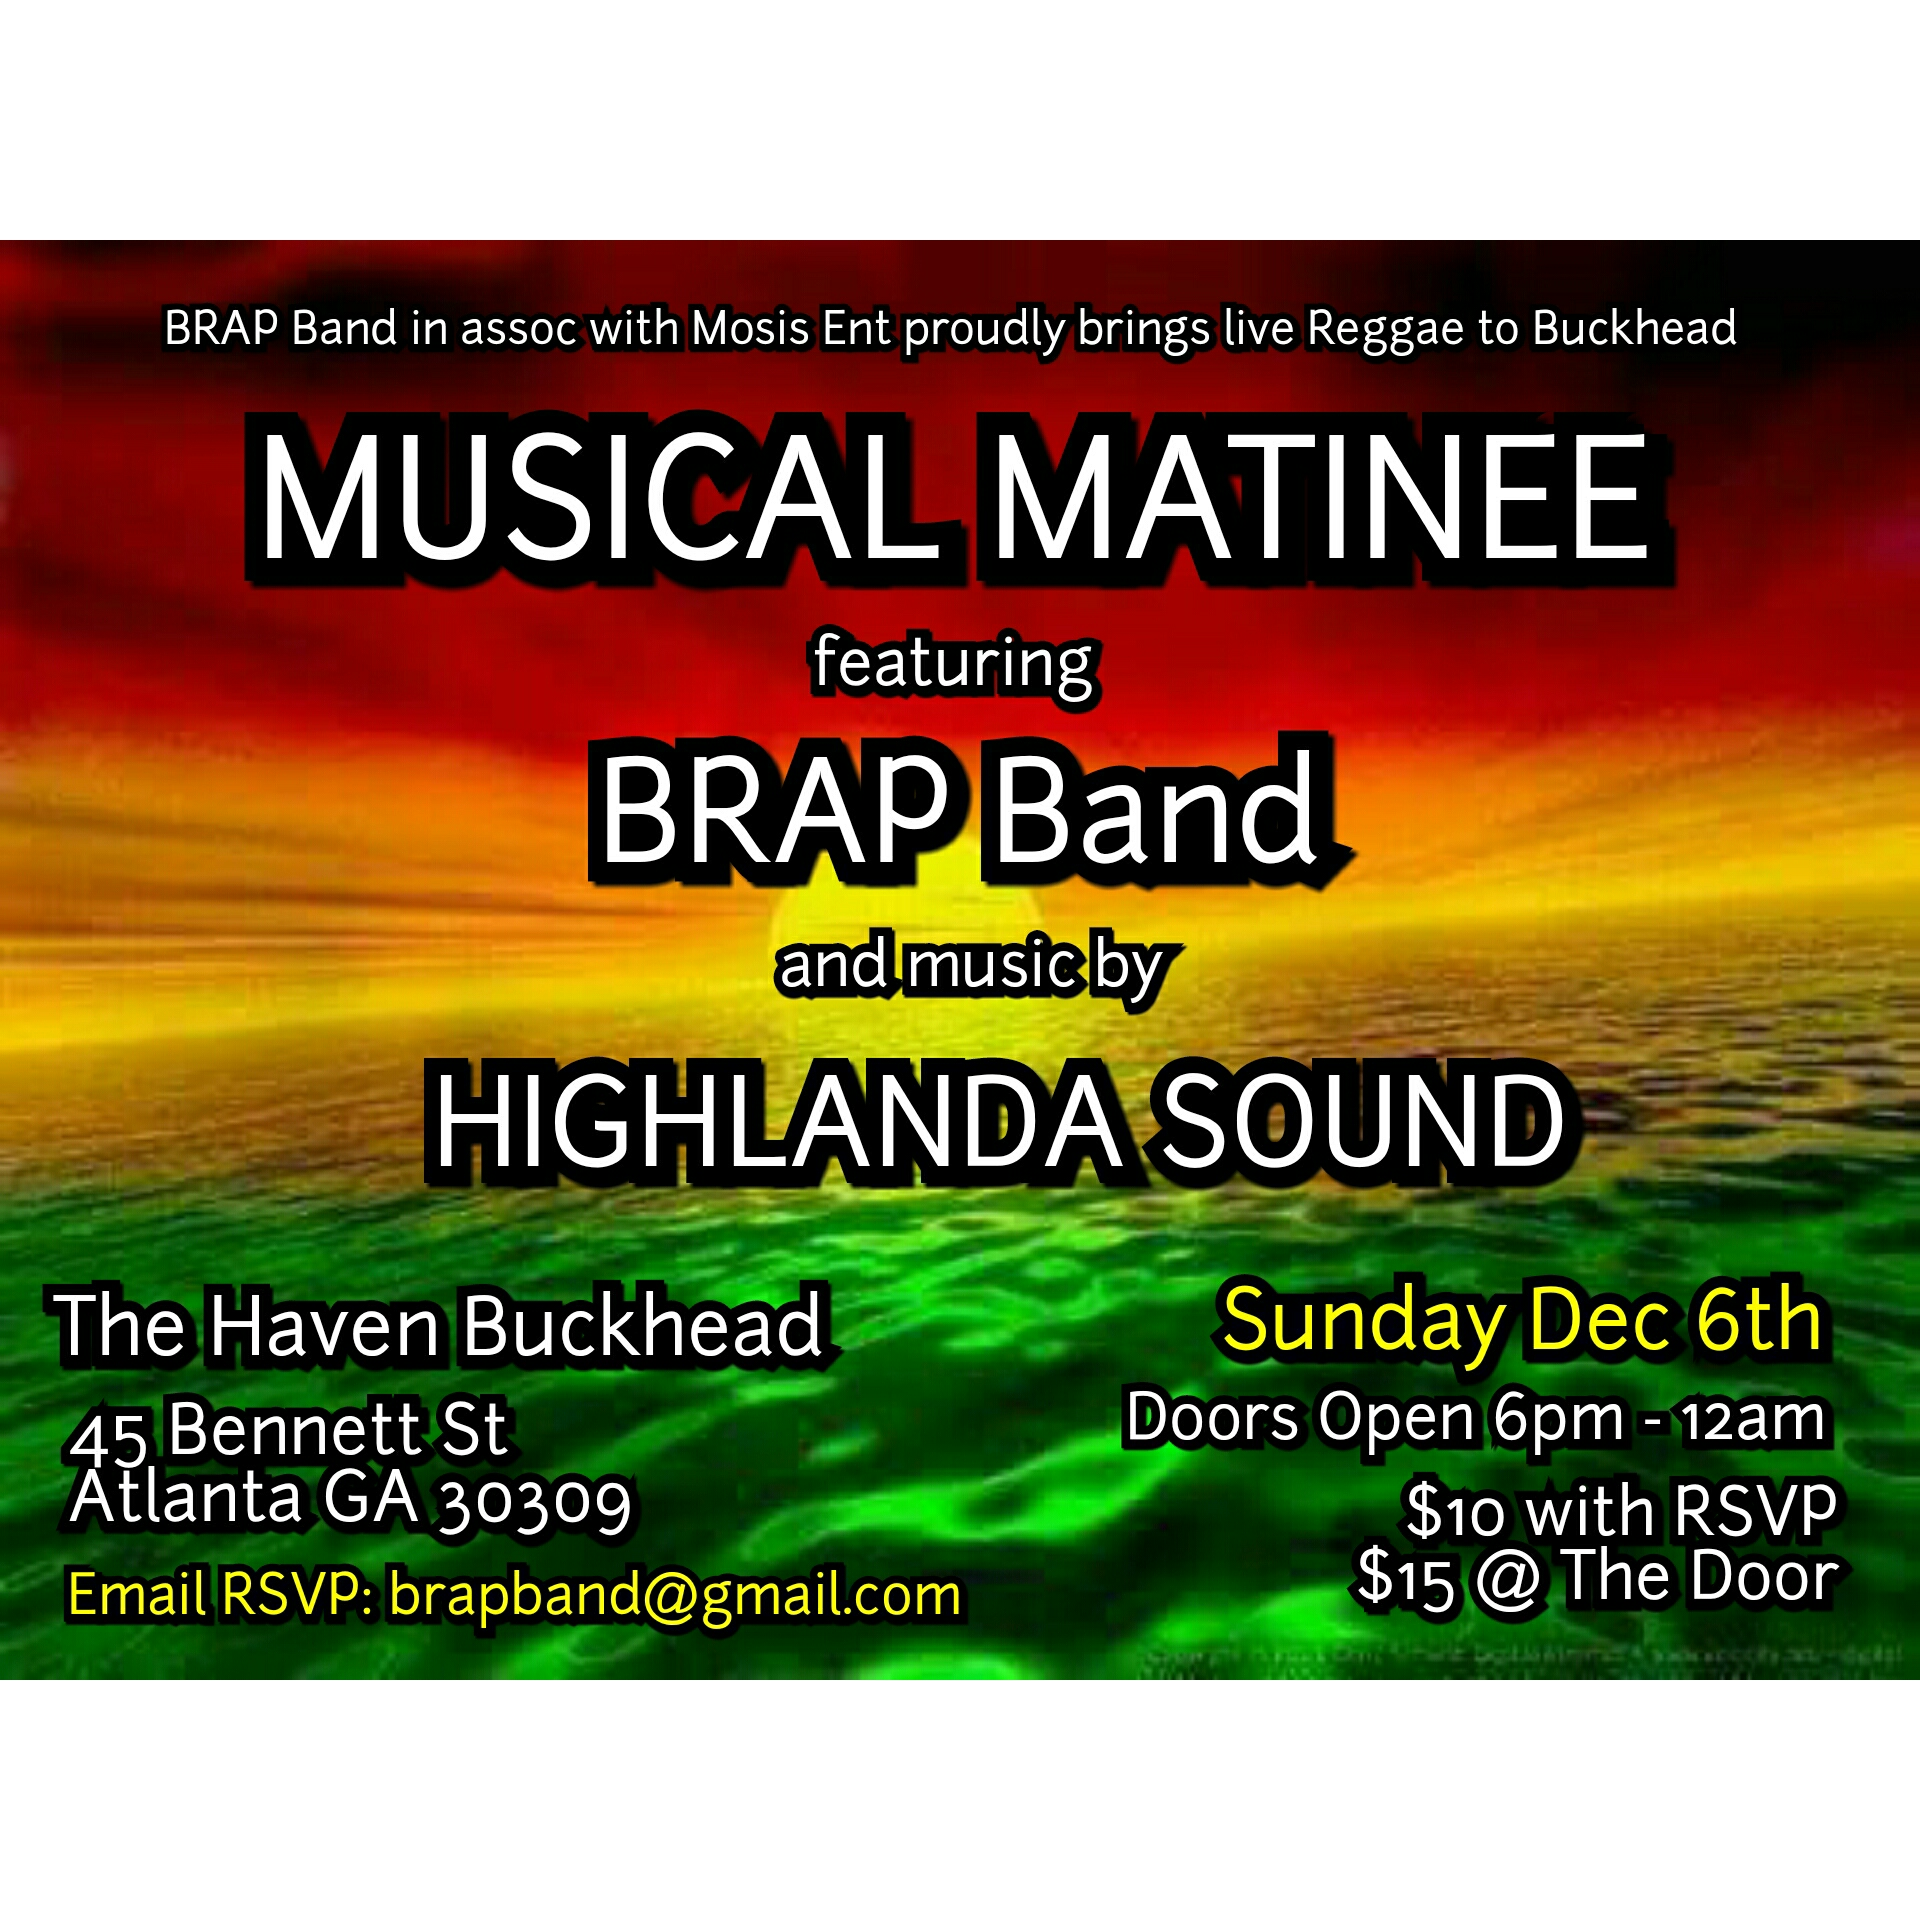 Musical Matinee at The Haven Buckhead with BRAP BAND and Highlanda Sound on Sunday December 6th from 6pm-12am.